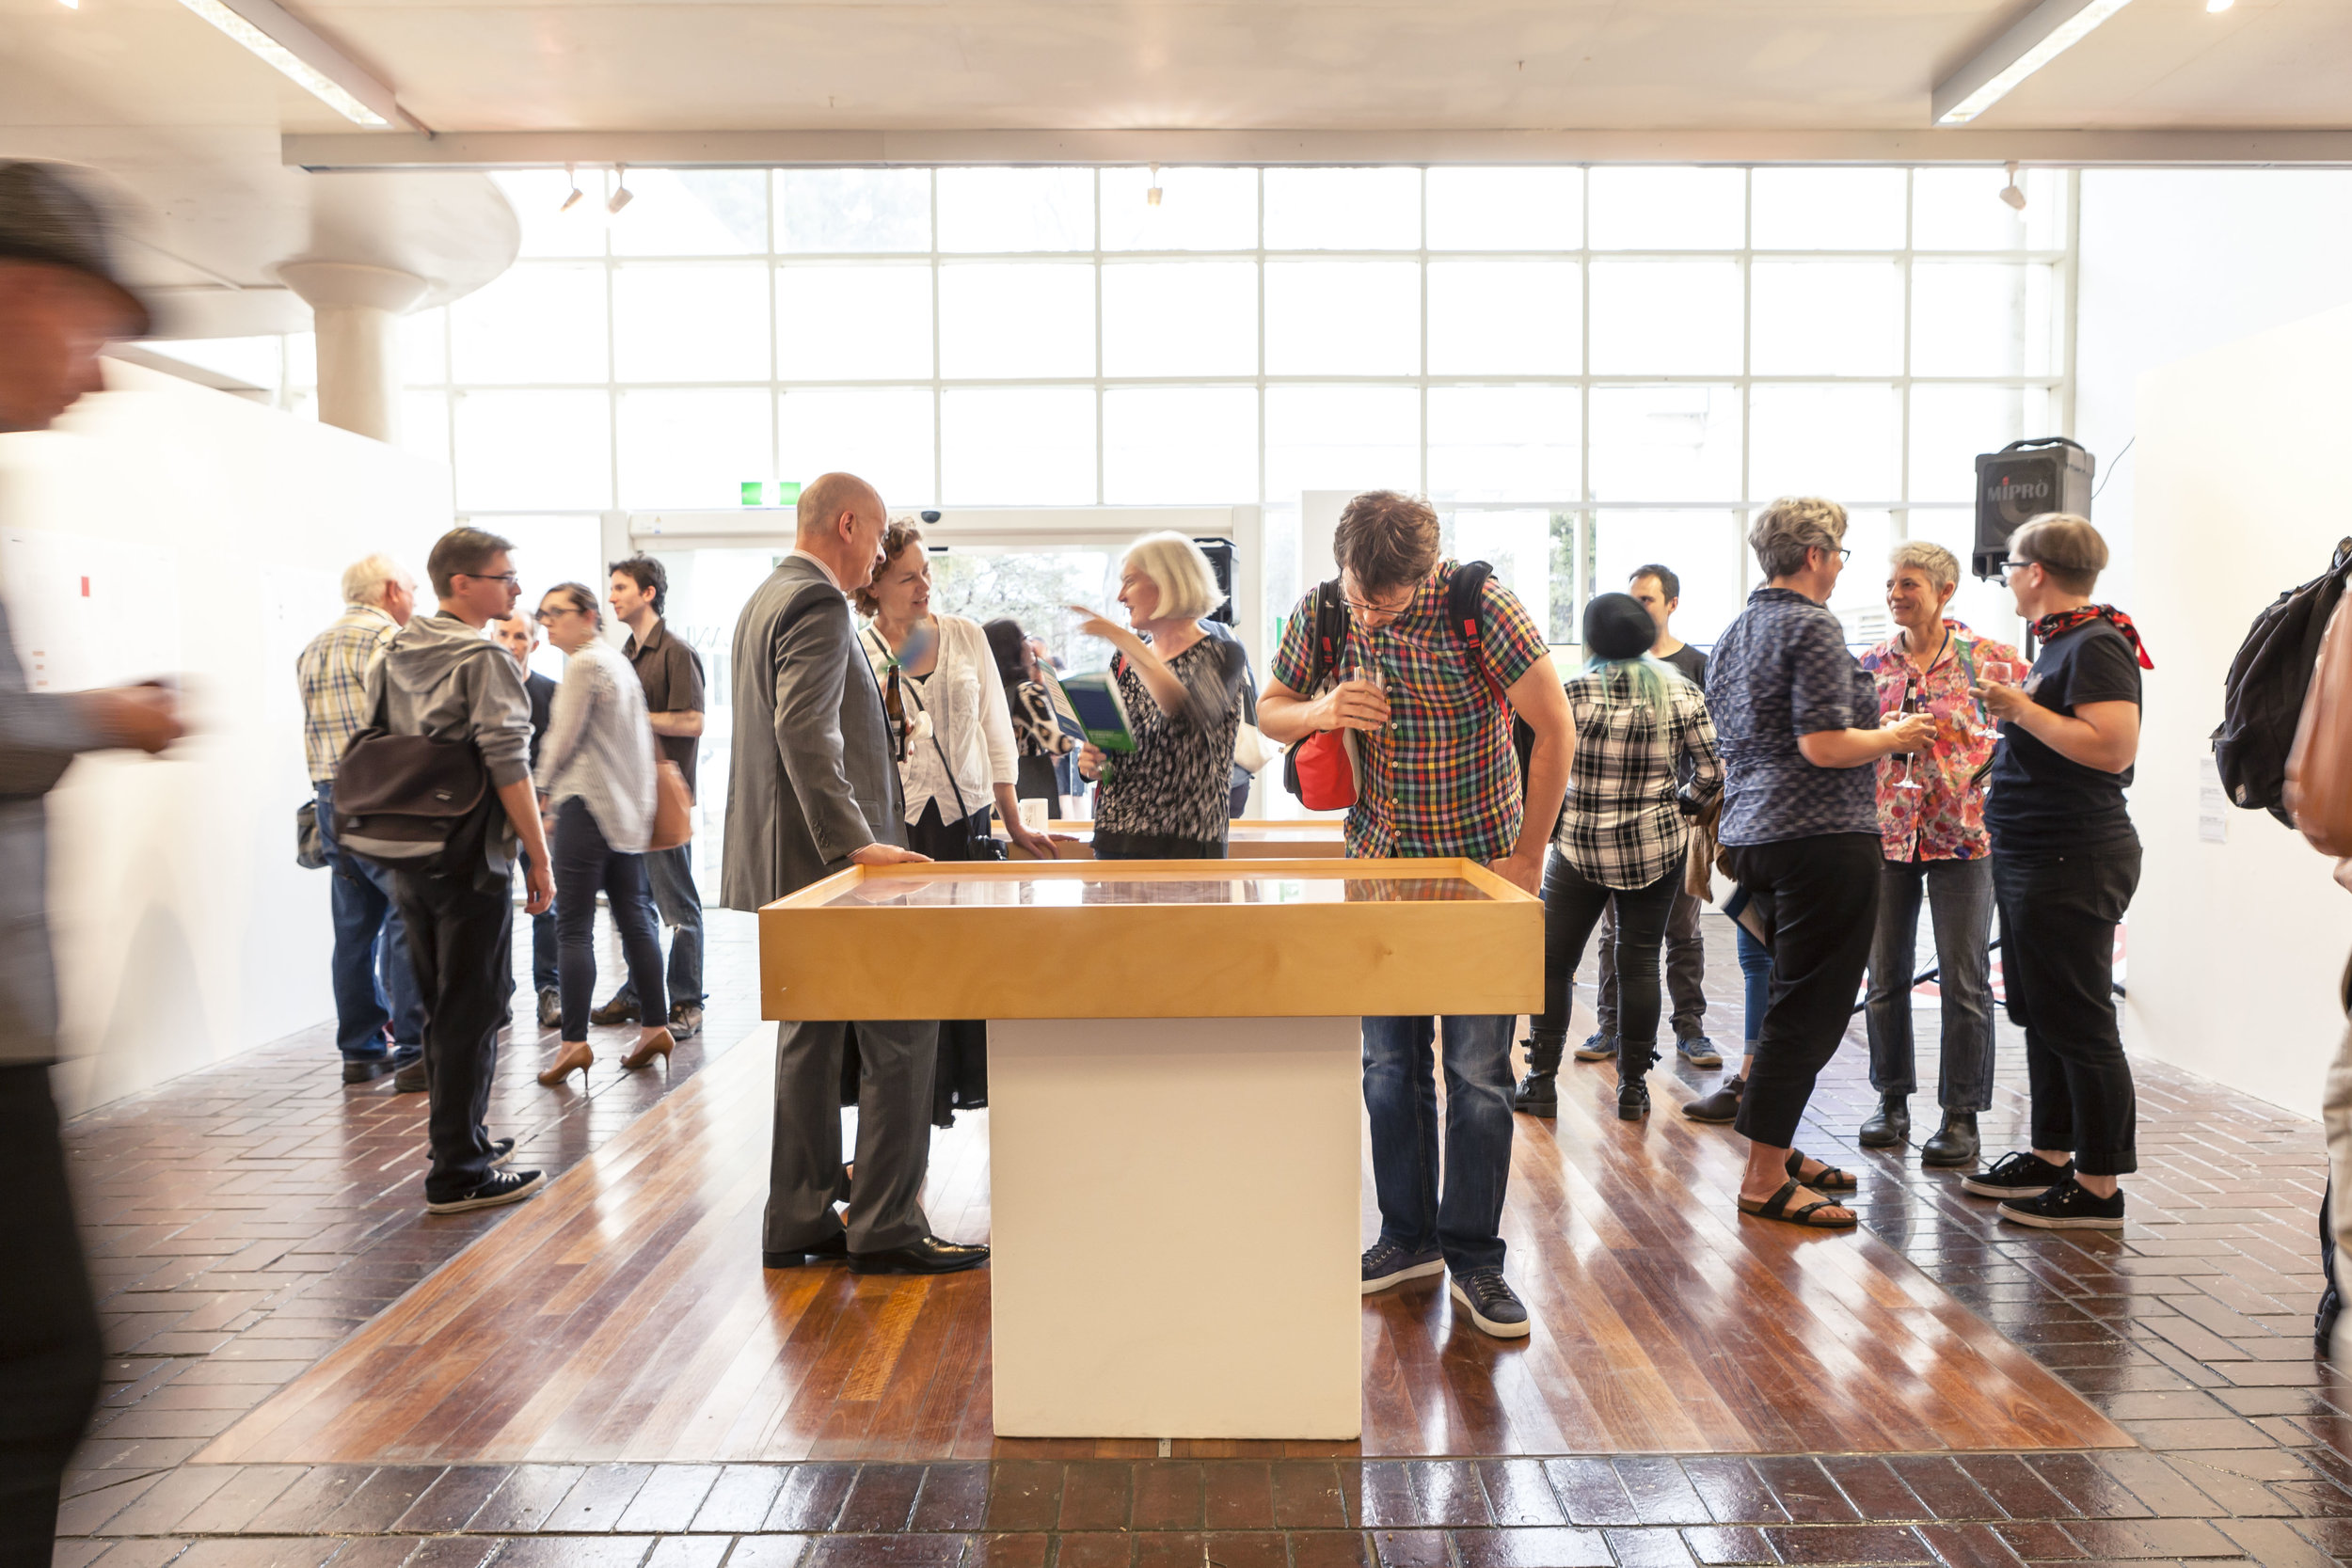 Exhibition opening of Cold Like Concrete, curated by Oscar Capezio, at the ANU Foyer Gallery. Image: Dream Pieces.